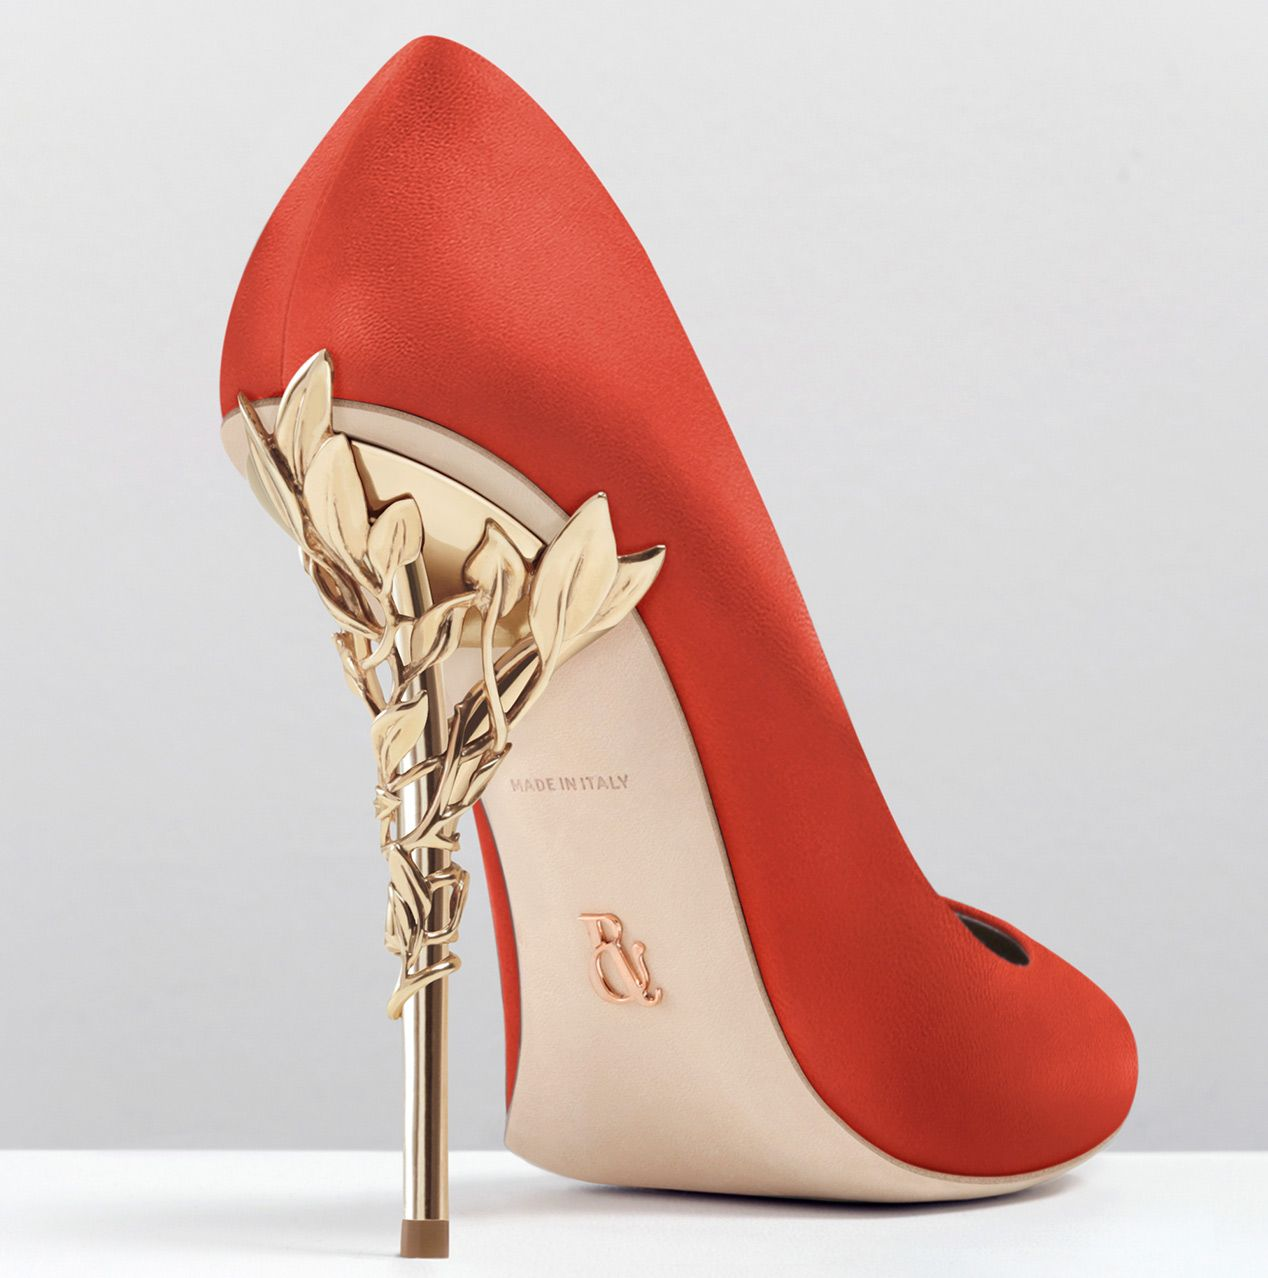 0970f16736d ralph-and-russo-eden-heel-pump-coral-leather-light-gold-leaves-heel -detail-2 2x 1 6